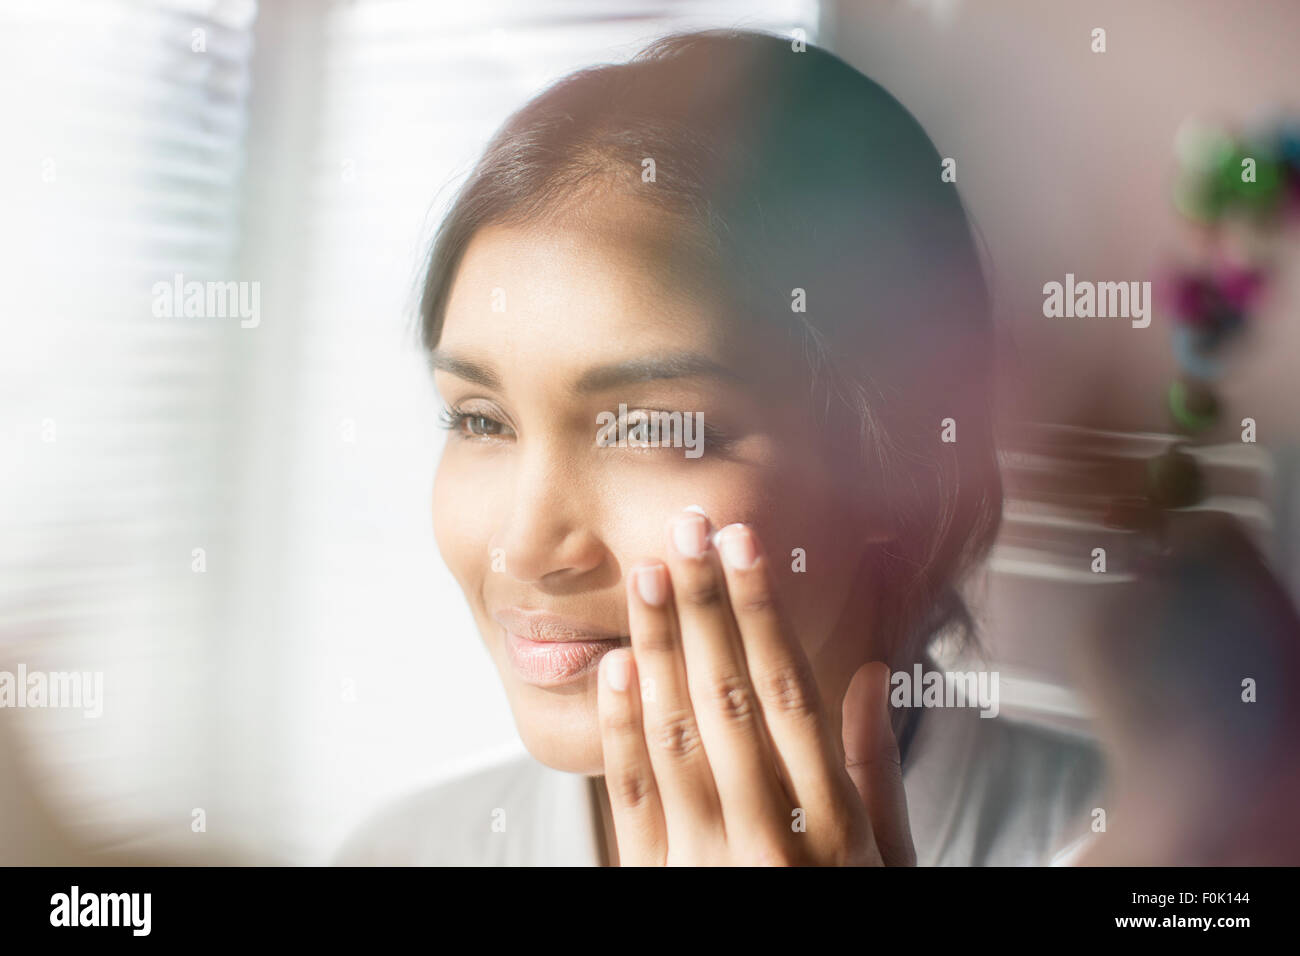 Close up woman applying moisturizer to face - Stock Image